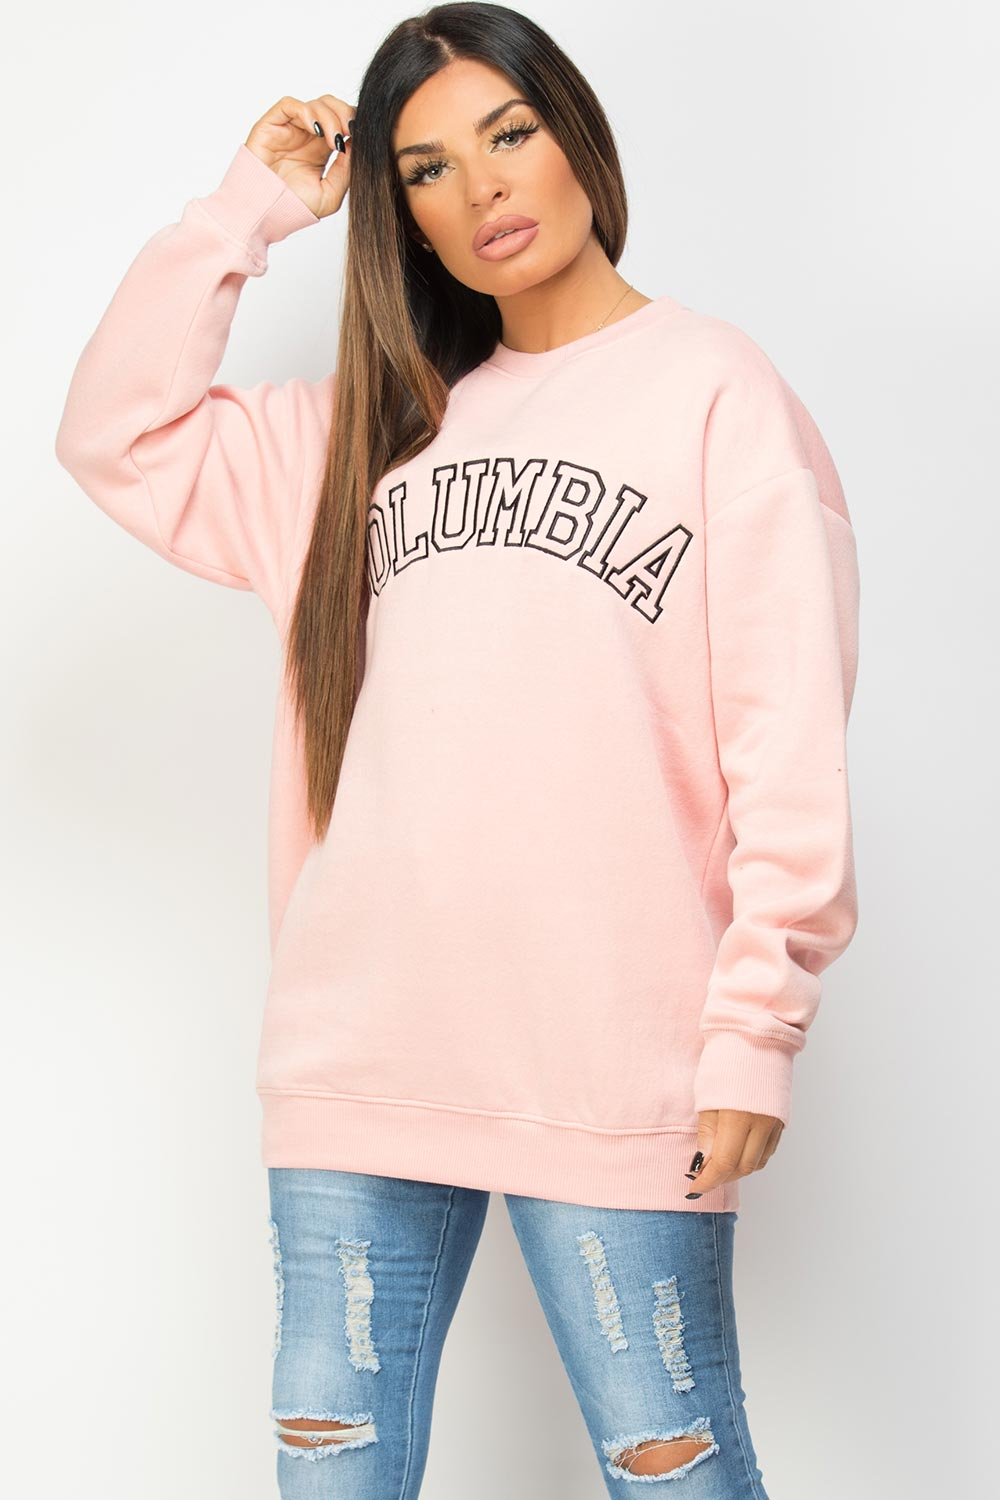 sweatshirt with columbia embroidery